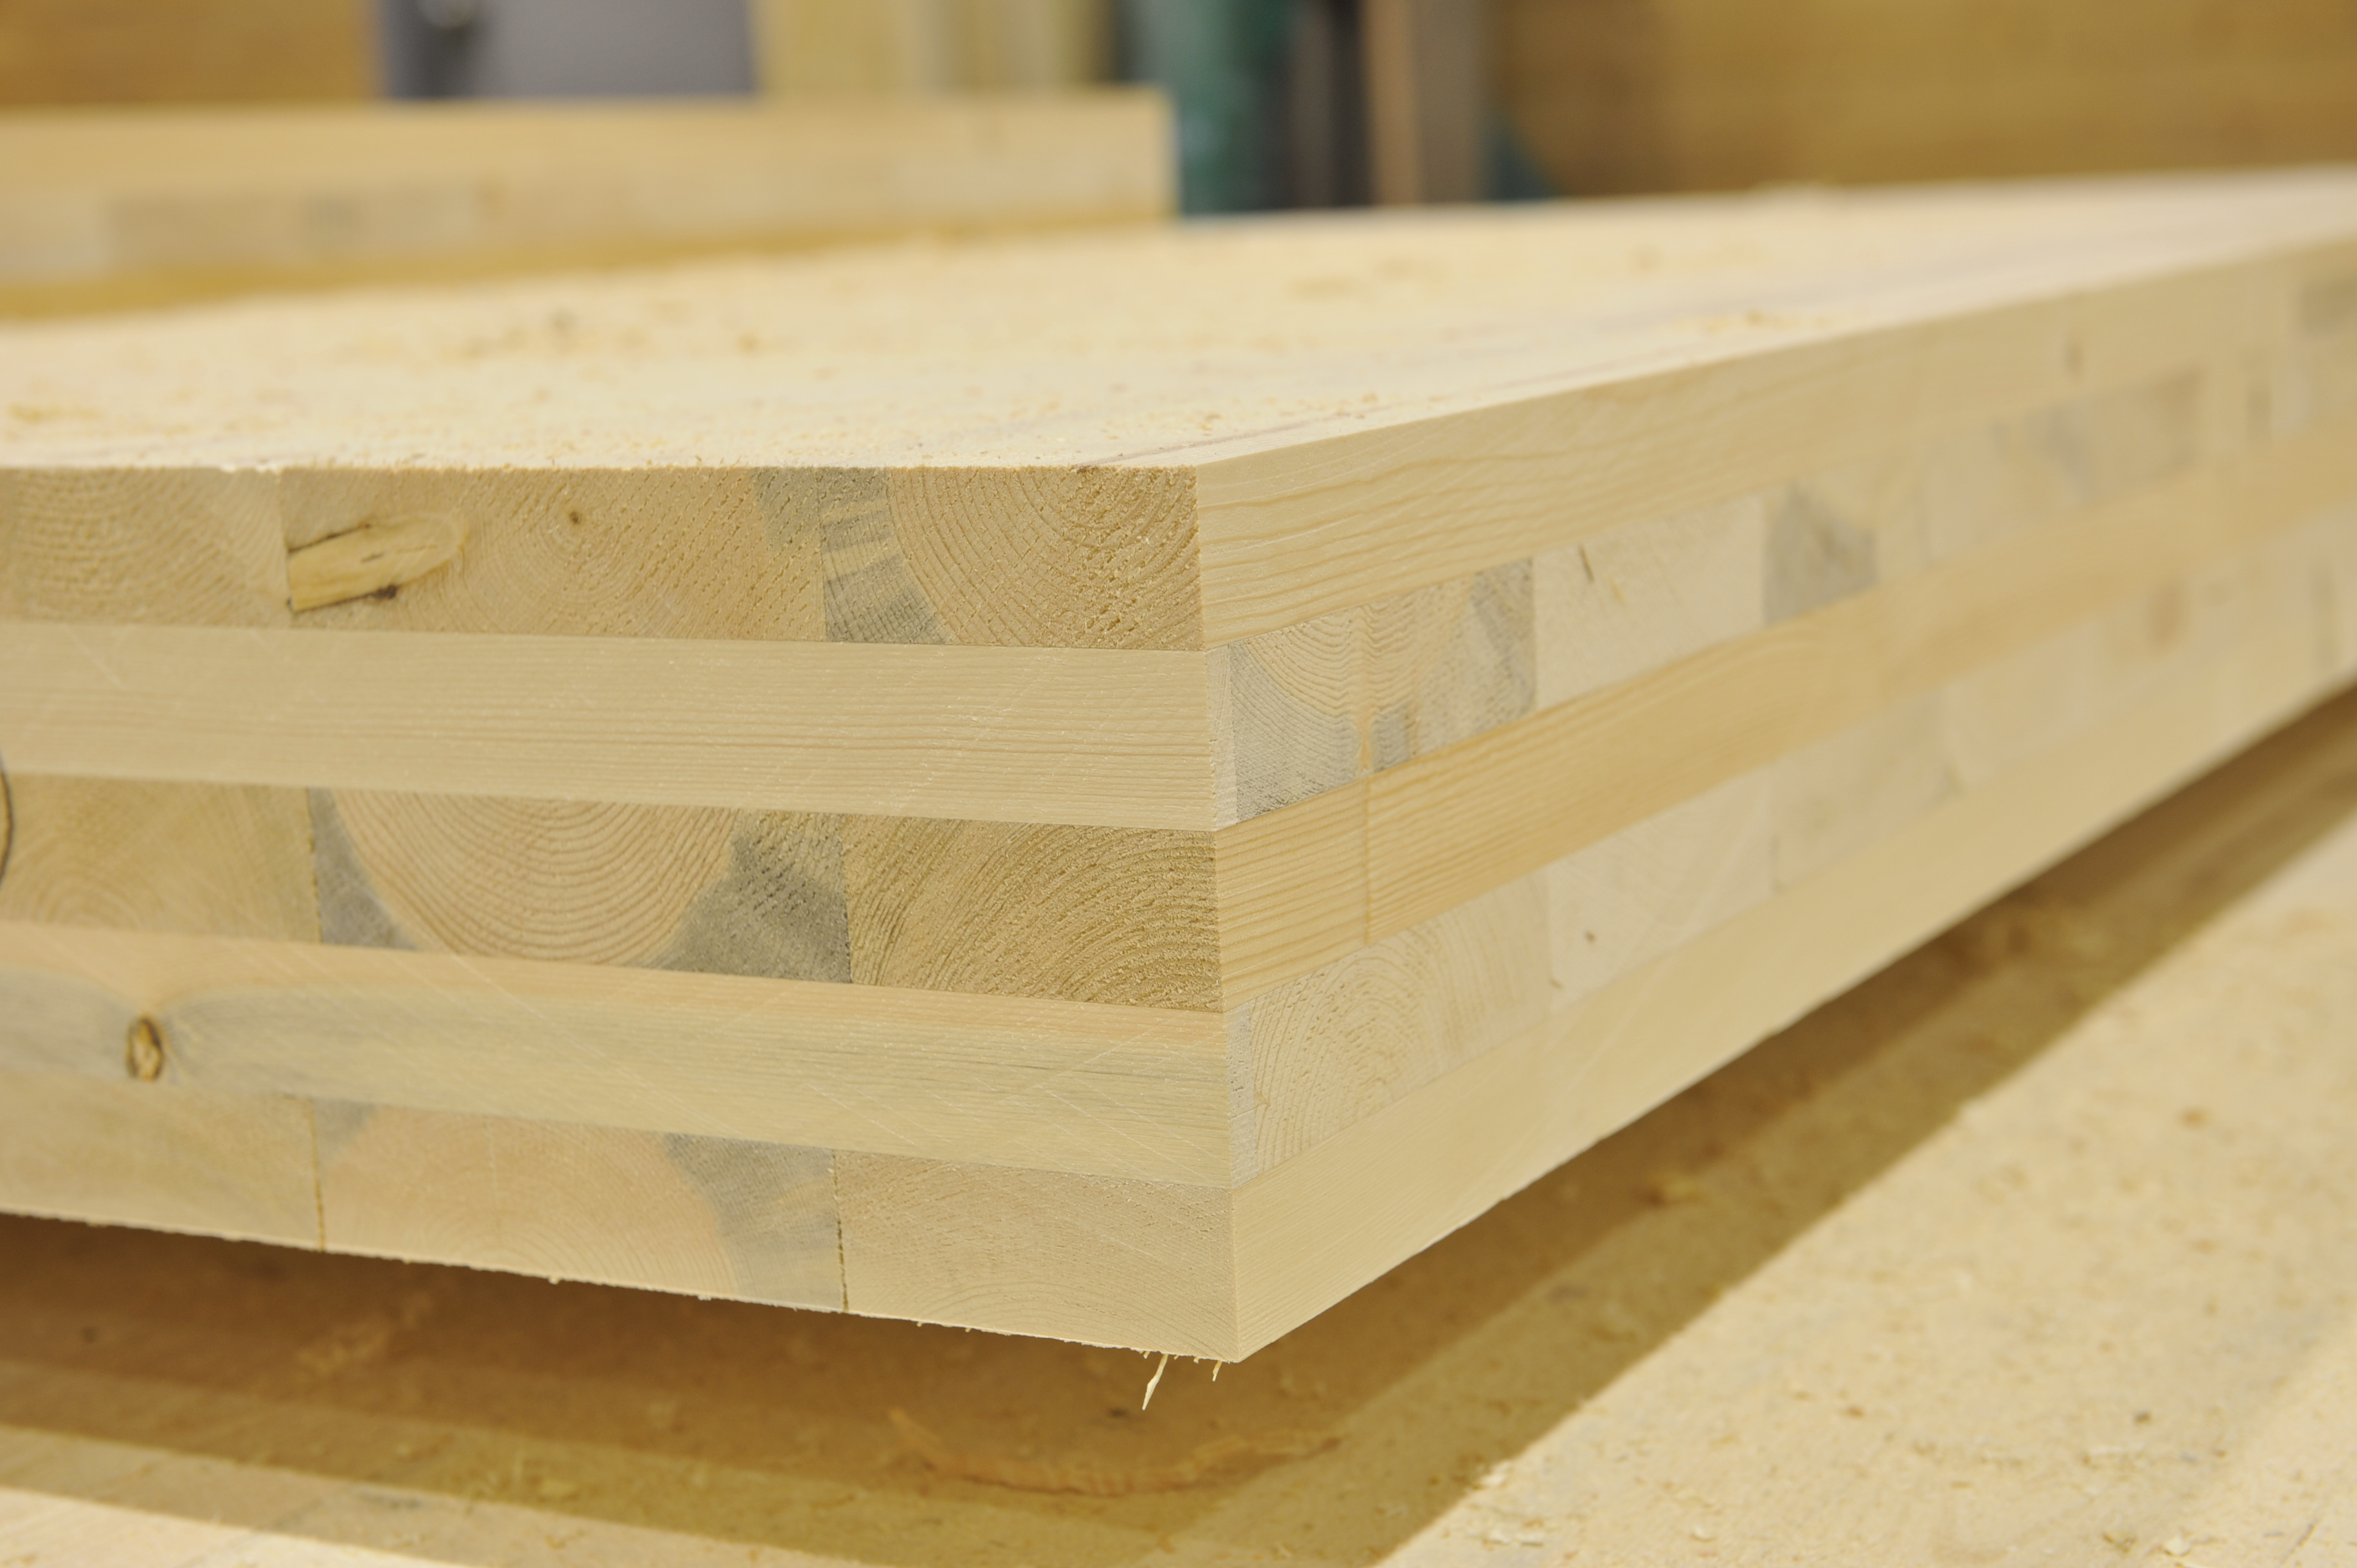 Cross laminated timber build it with wood for Laminated wood